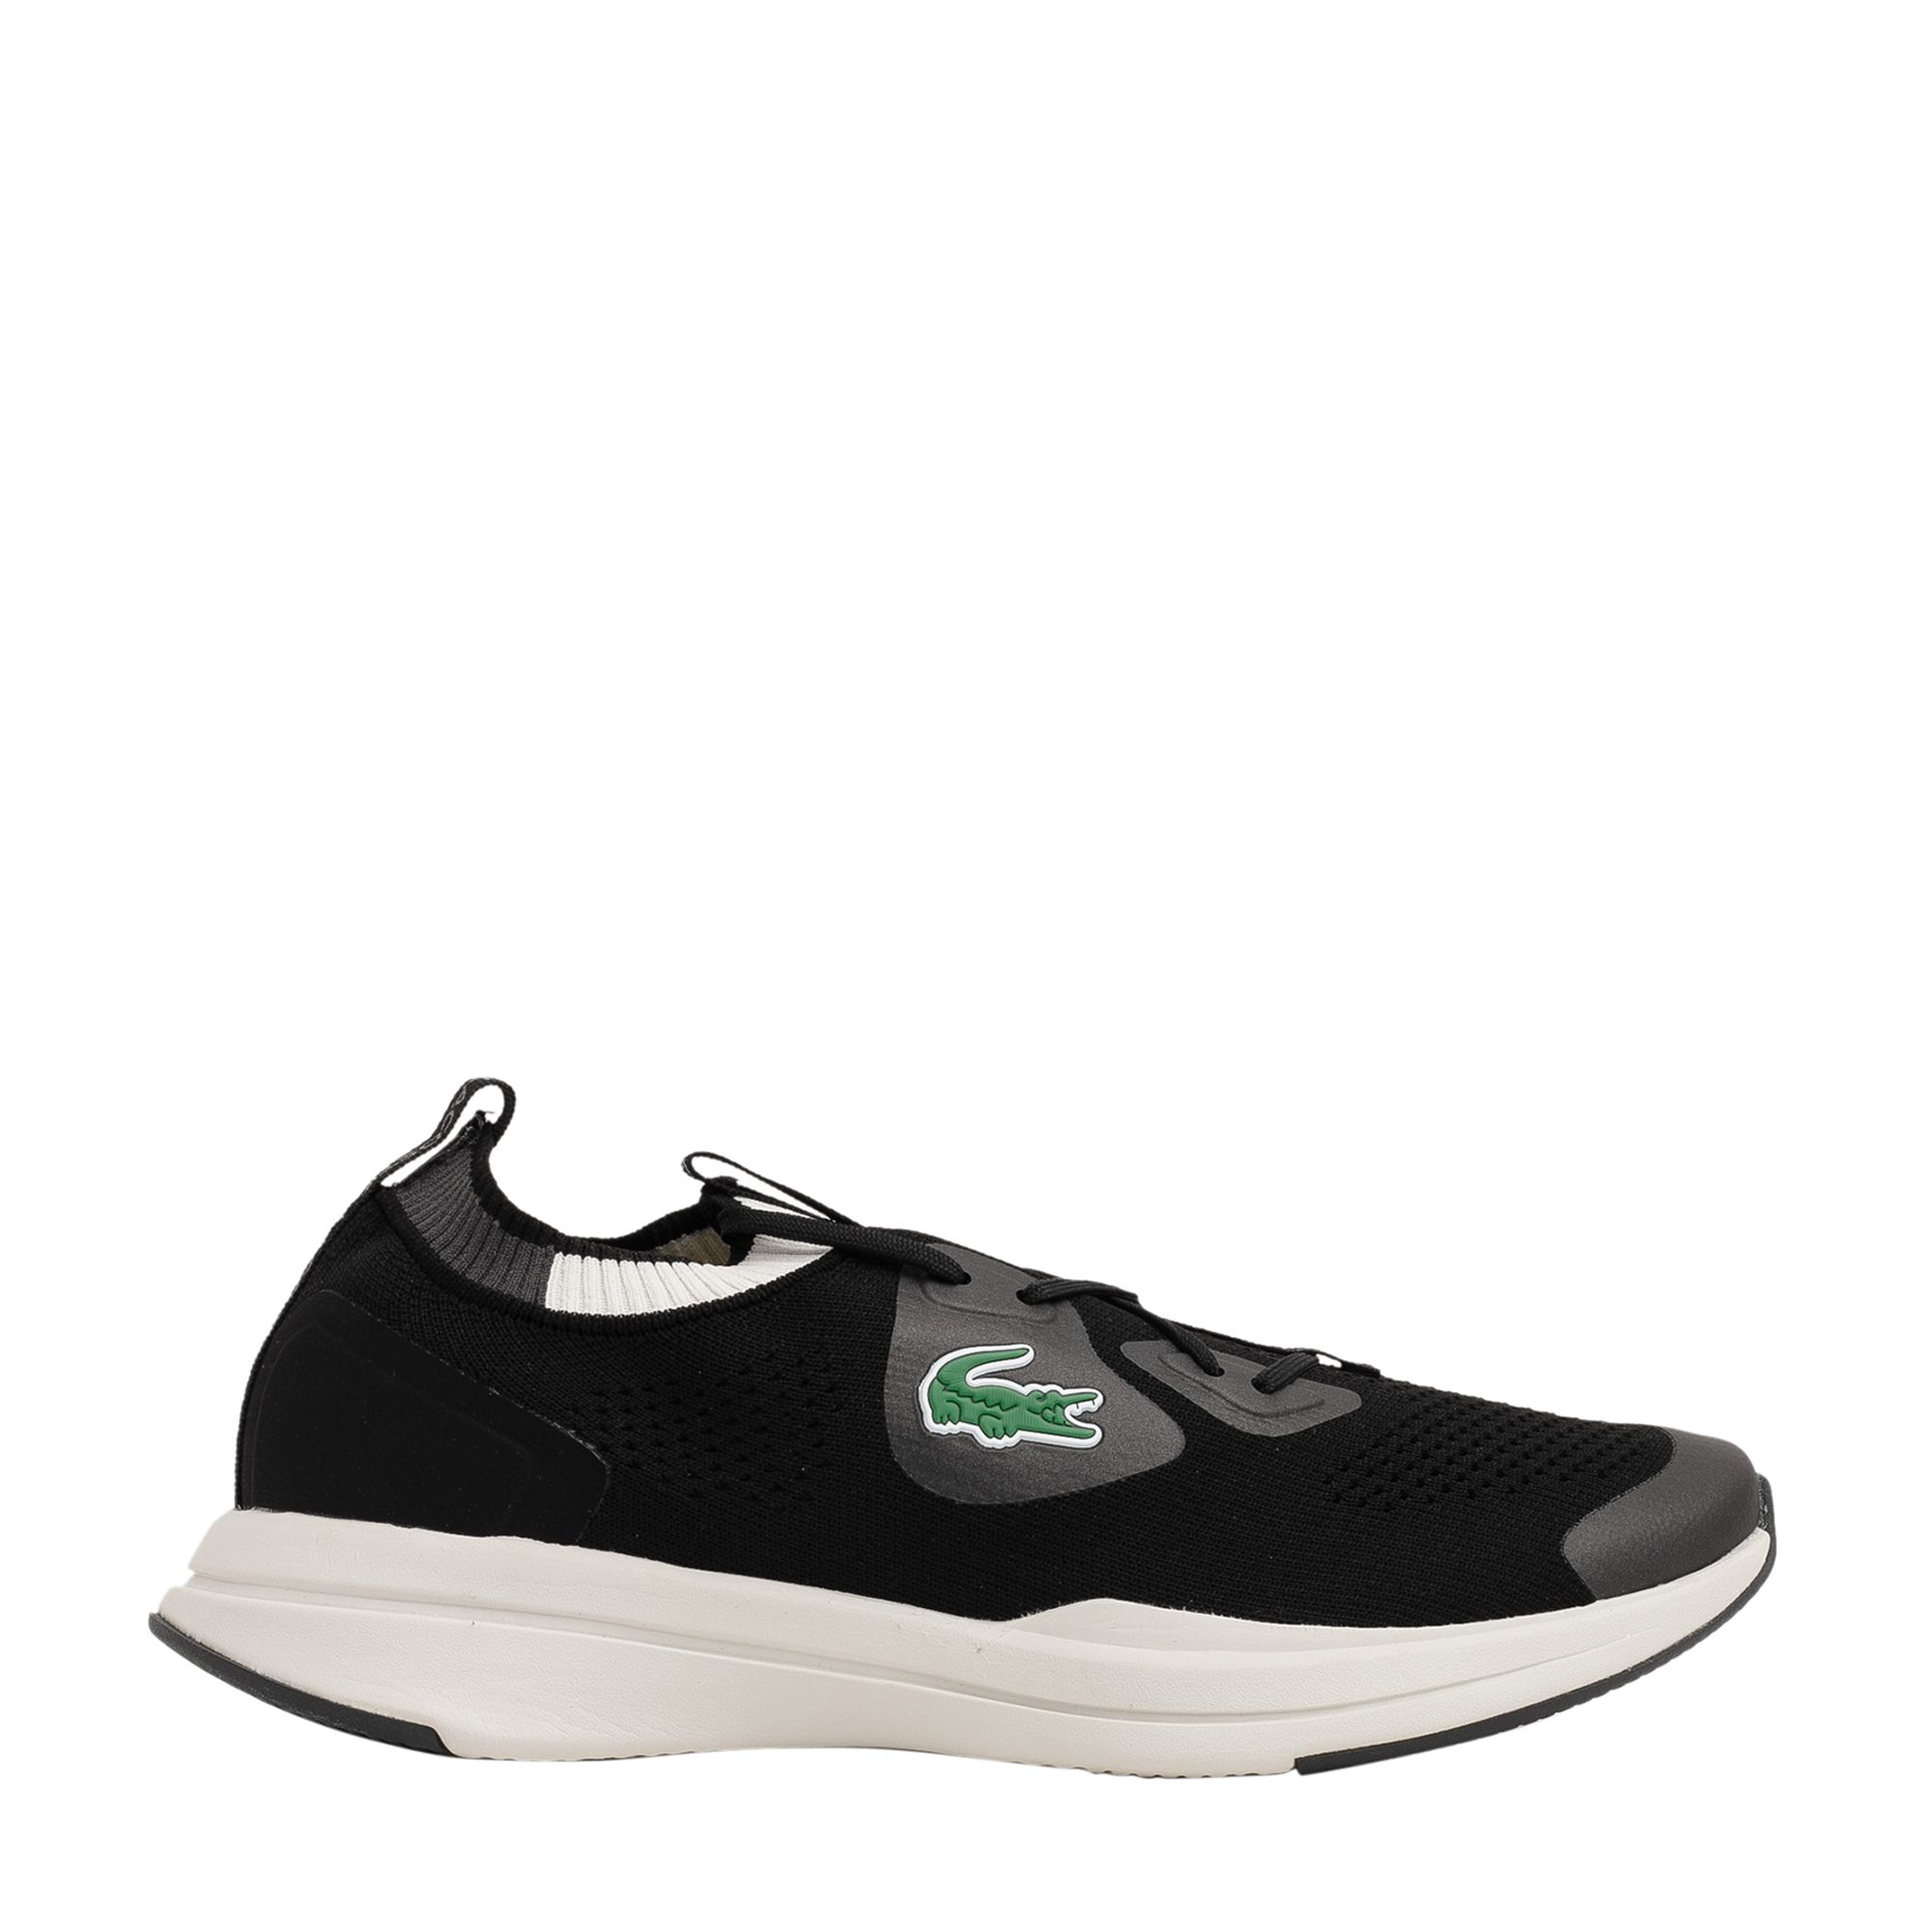 Run Spin Knit sneakers